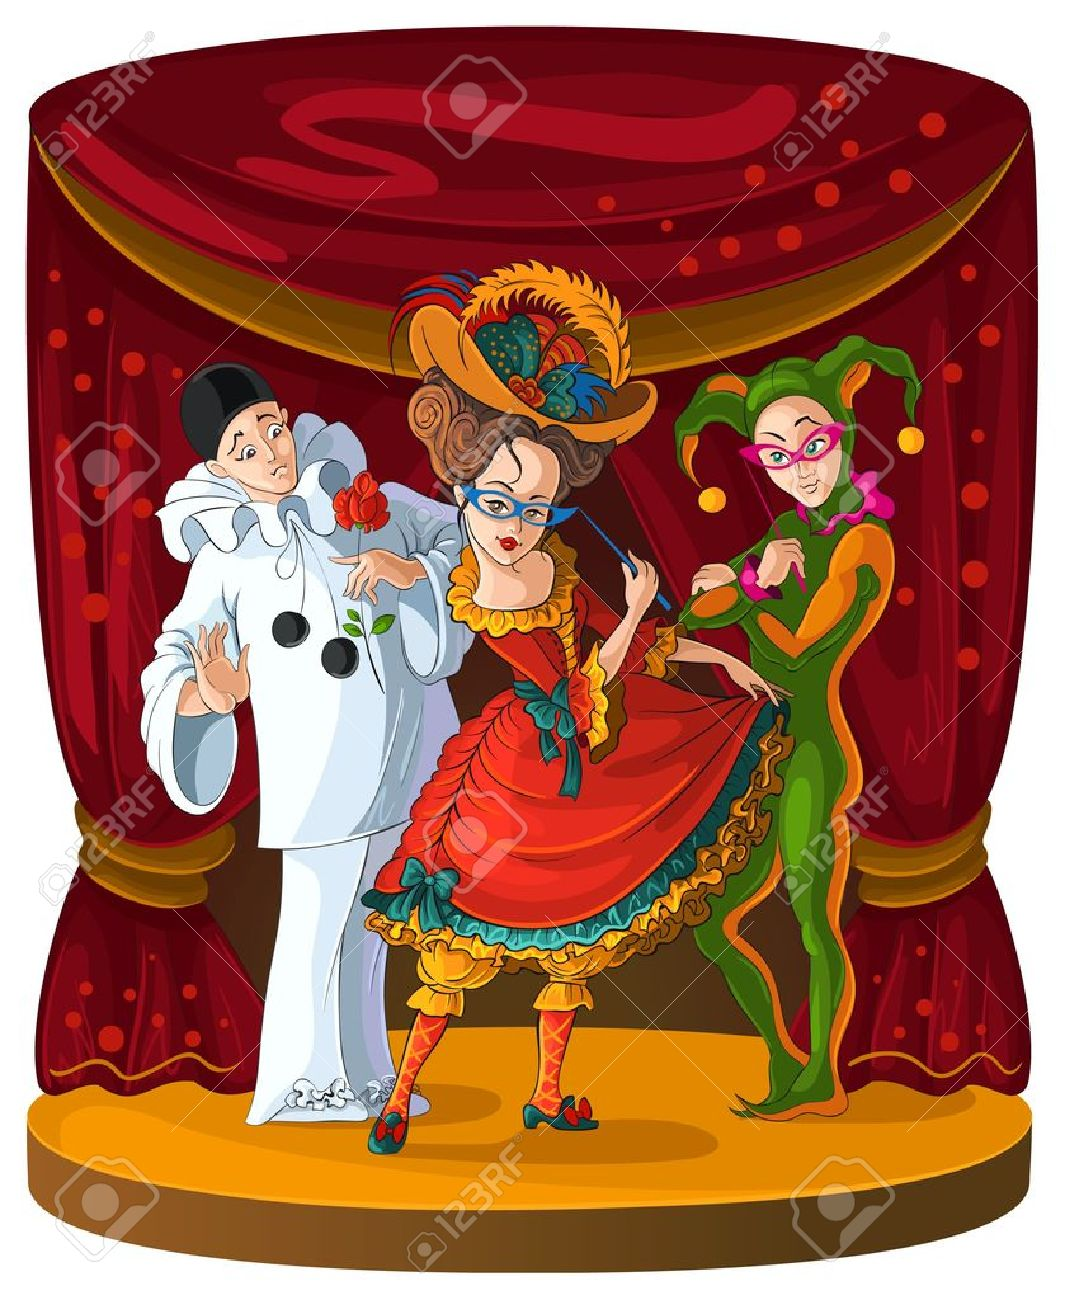 Columbine, Harlequin and Pierrot - theater comedian characters - 17514068